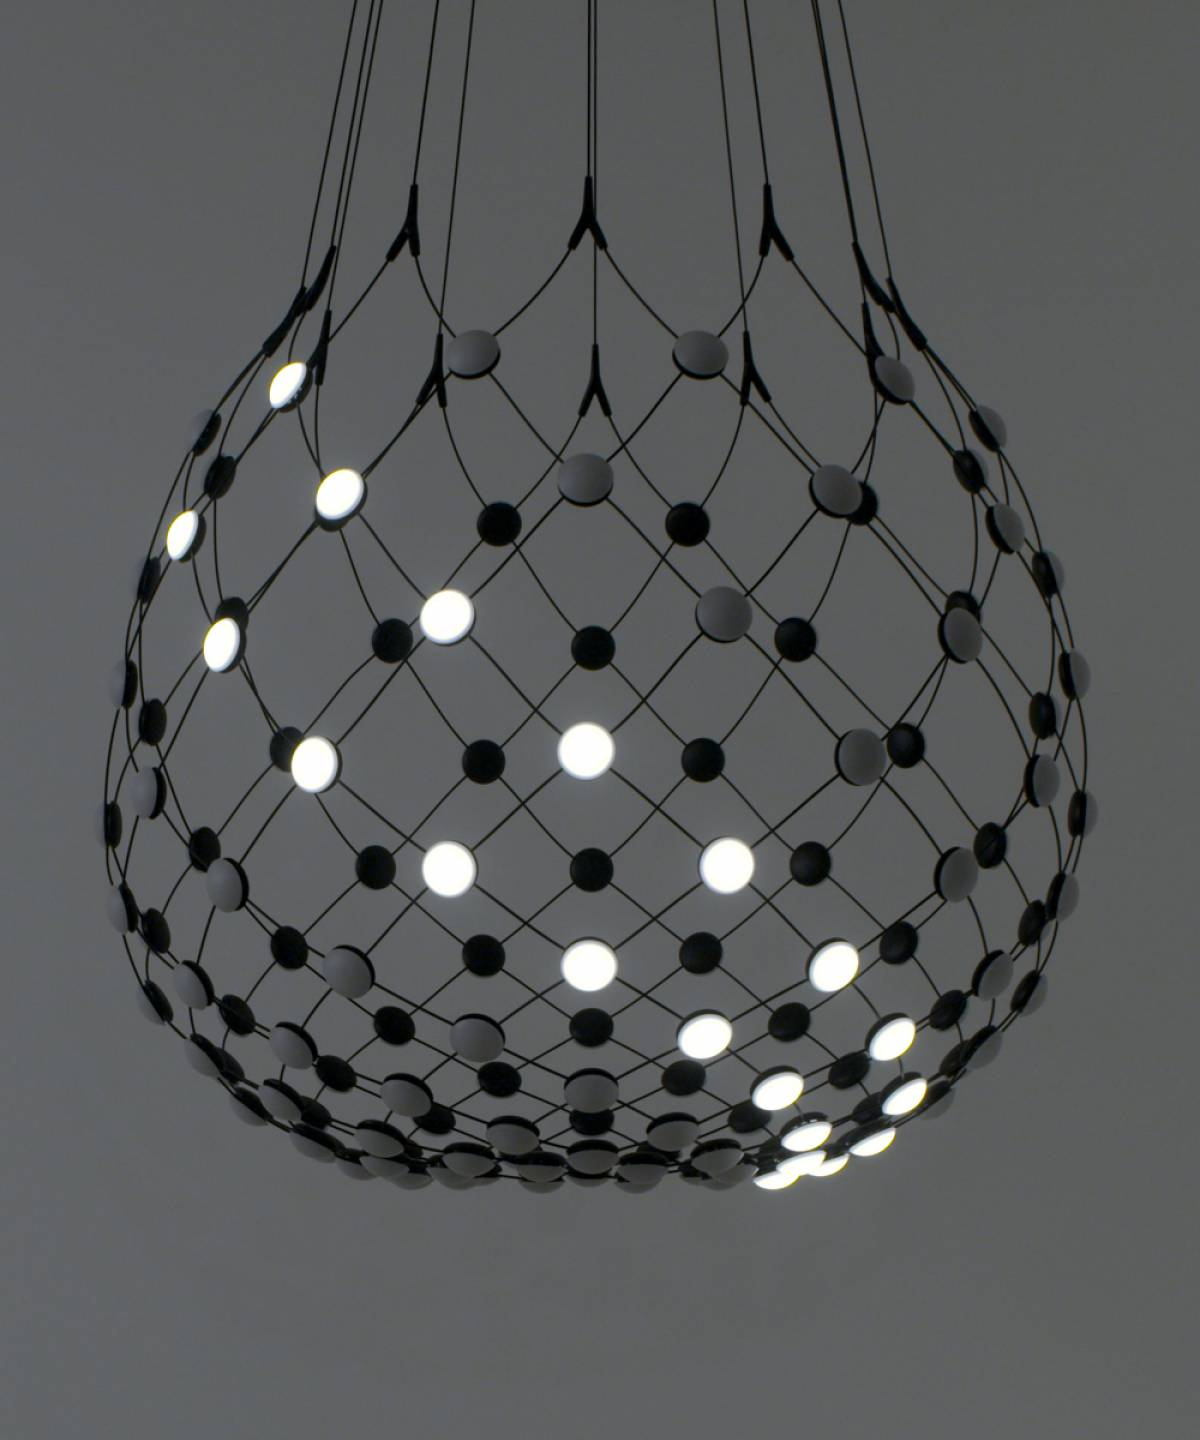 5 Mesh wireless lamp Luceplan